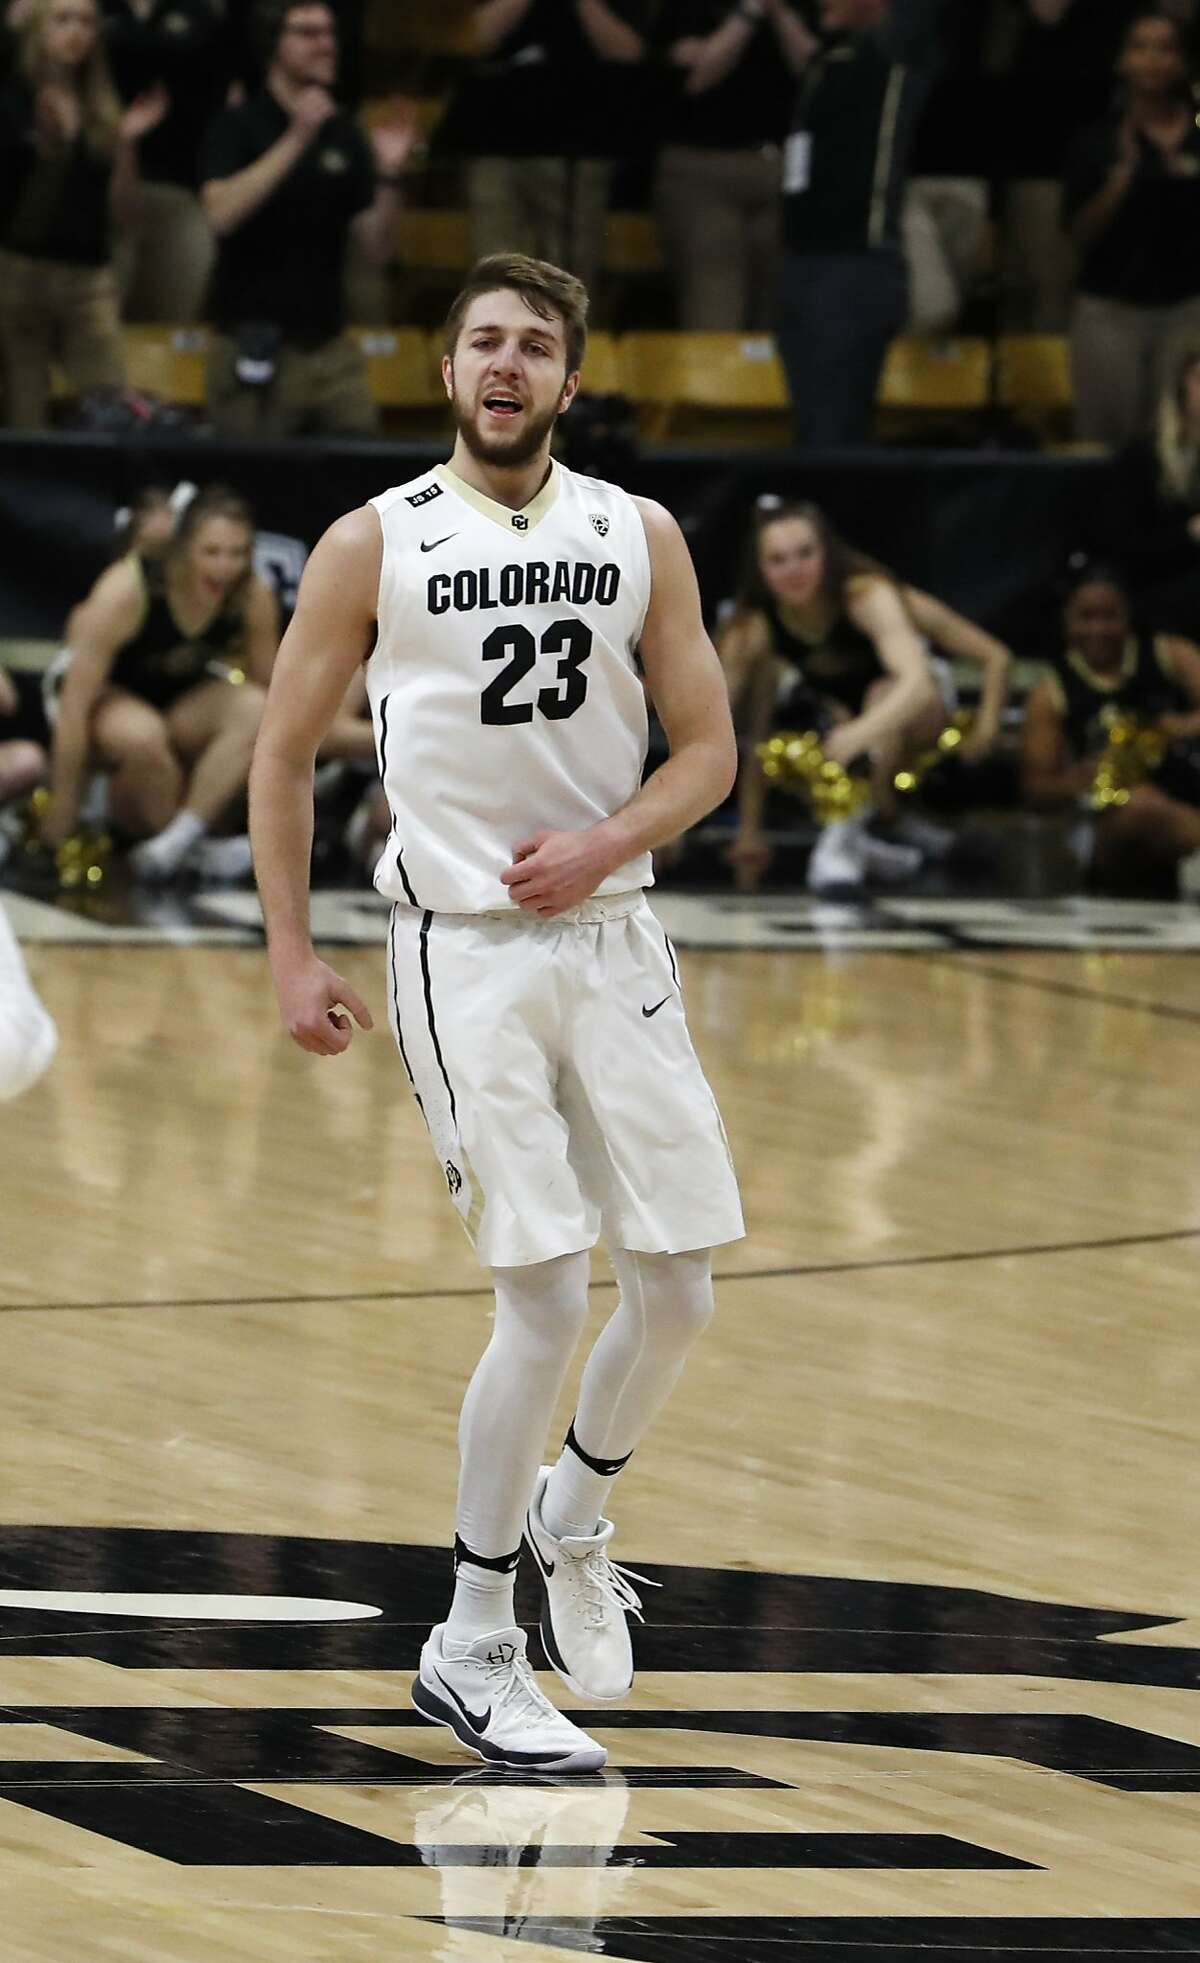 Colorado forward Lucas Siewert, back, smiles after hitting a three-point basket against Stanford late in the second half of an NCAA college basketball game Sunday, Feb. 11, 2018, in Boulder, Colo. (AP Photo/David Zalubowski)